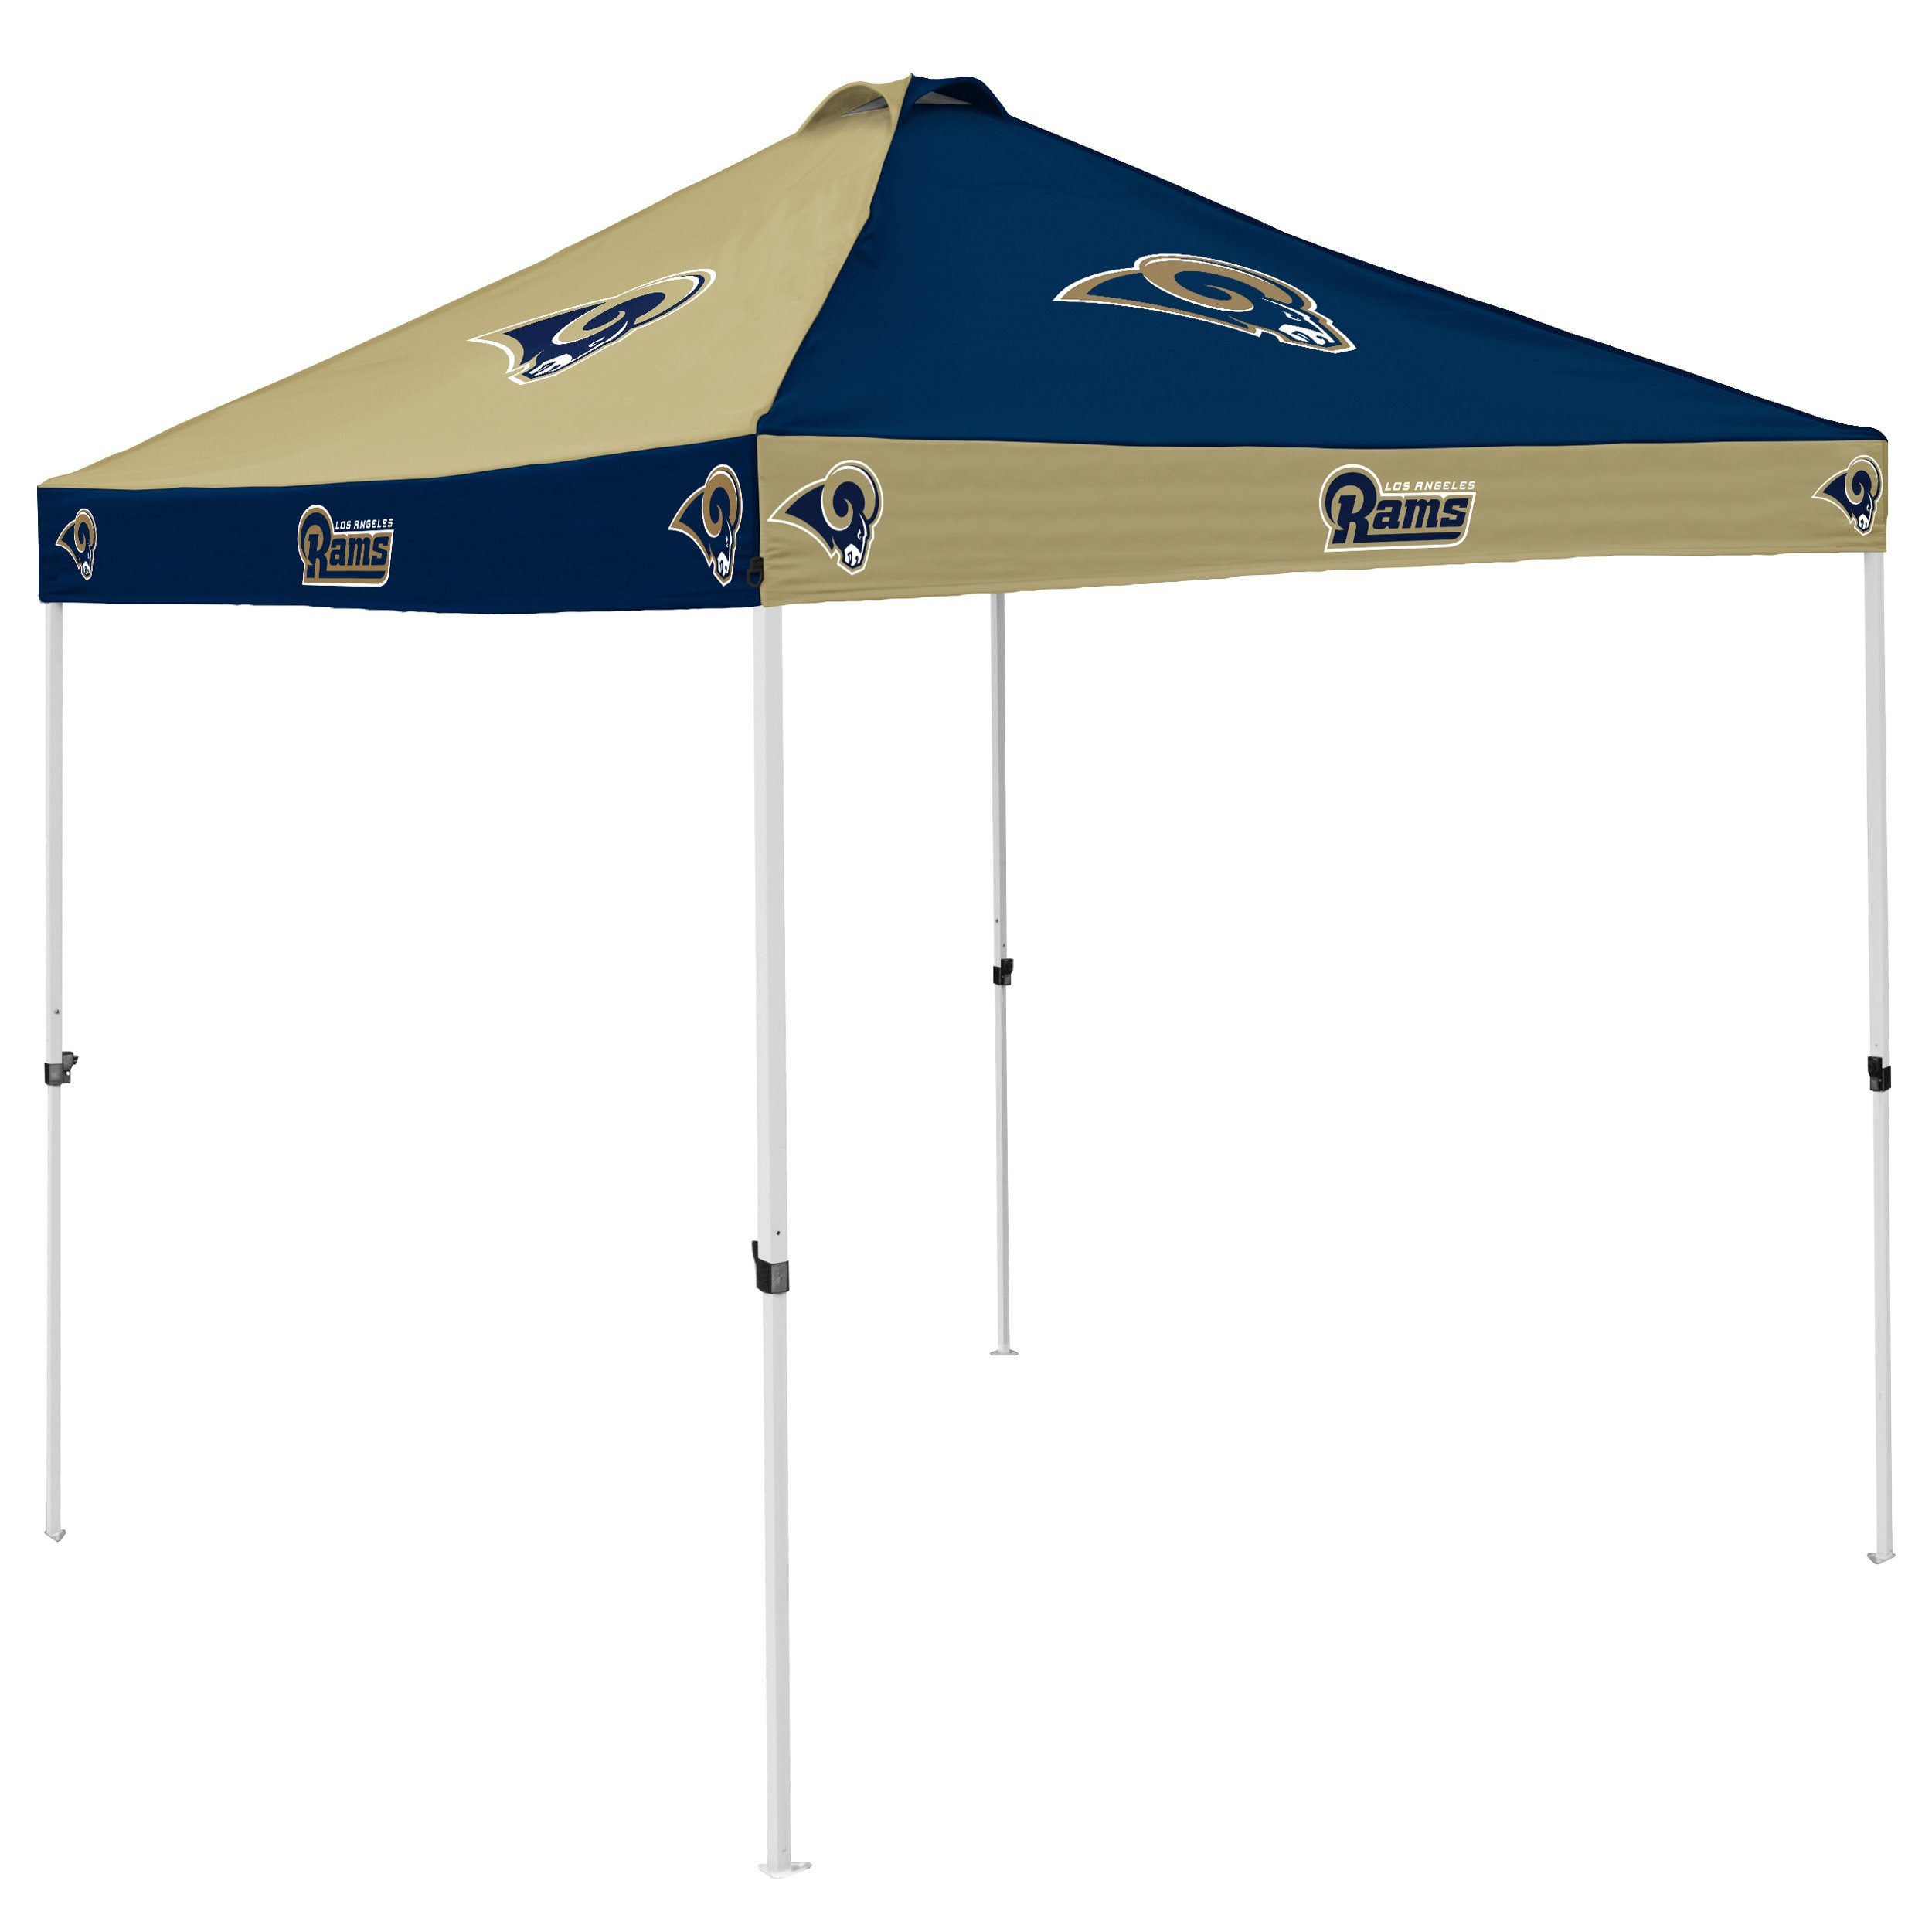 NFL St. Louis Rams Checkerboard Tent Checkerboard Tent, Navy, One Size by Logo Brands (Image #1)